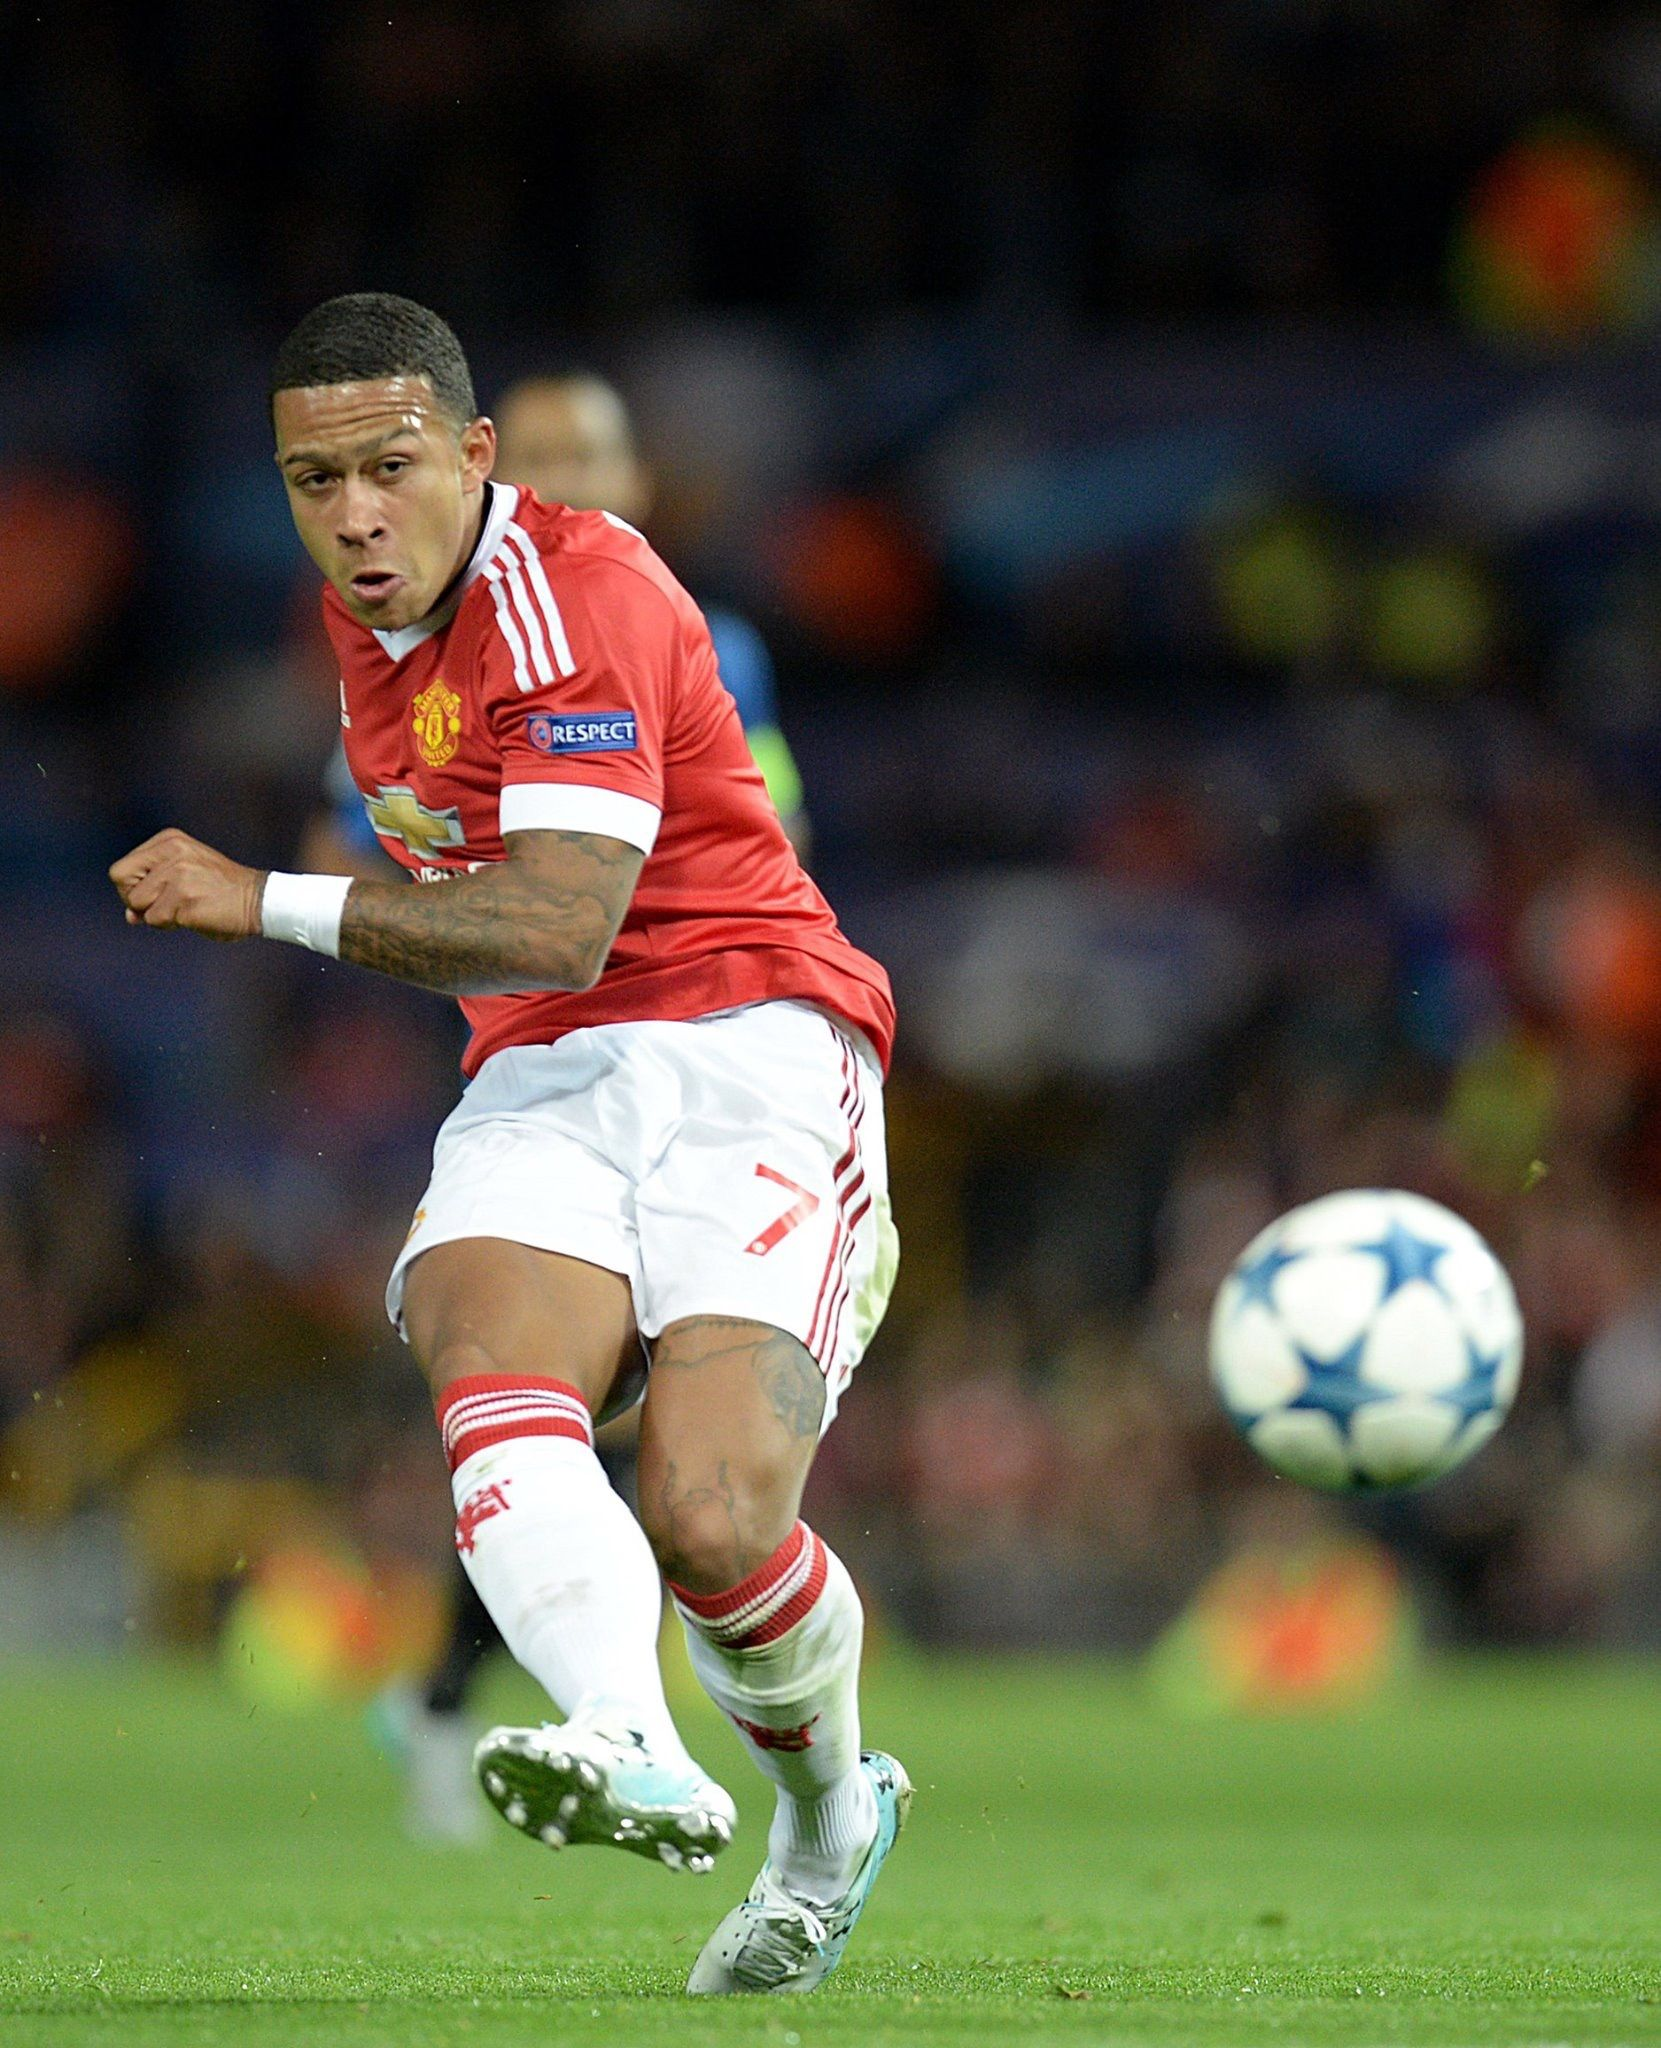 Manutdoff Two Wonder Goals From Memphis Depay Against Club